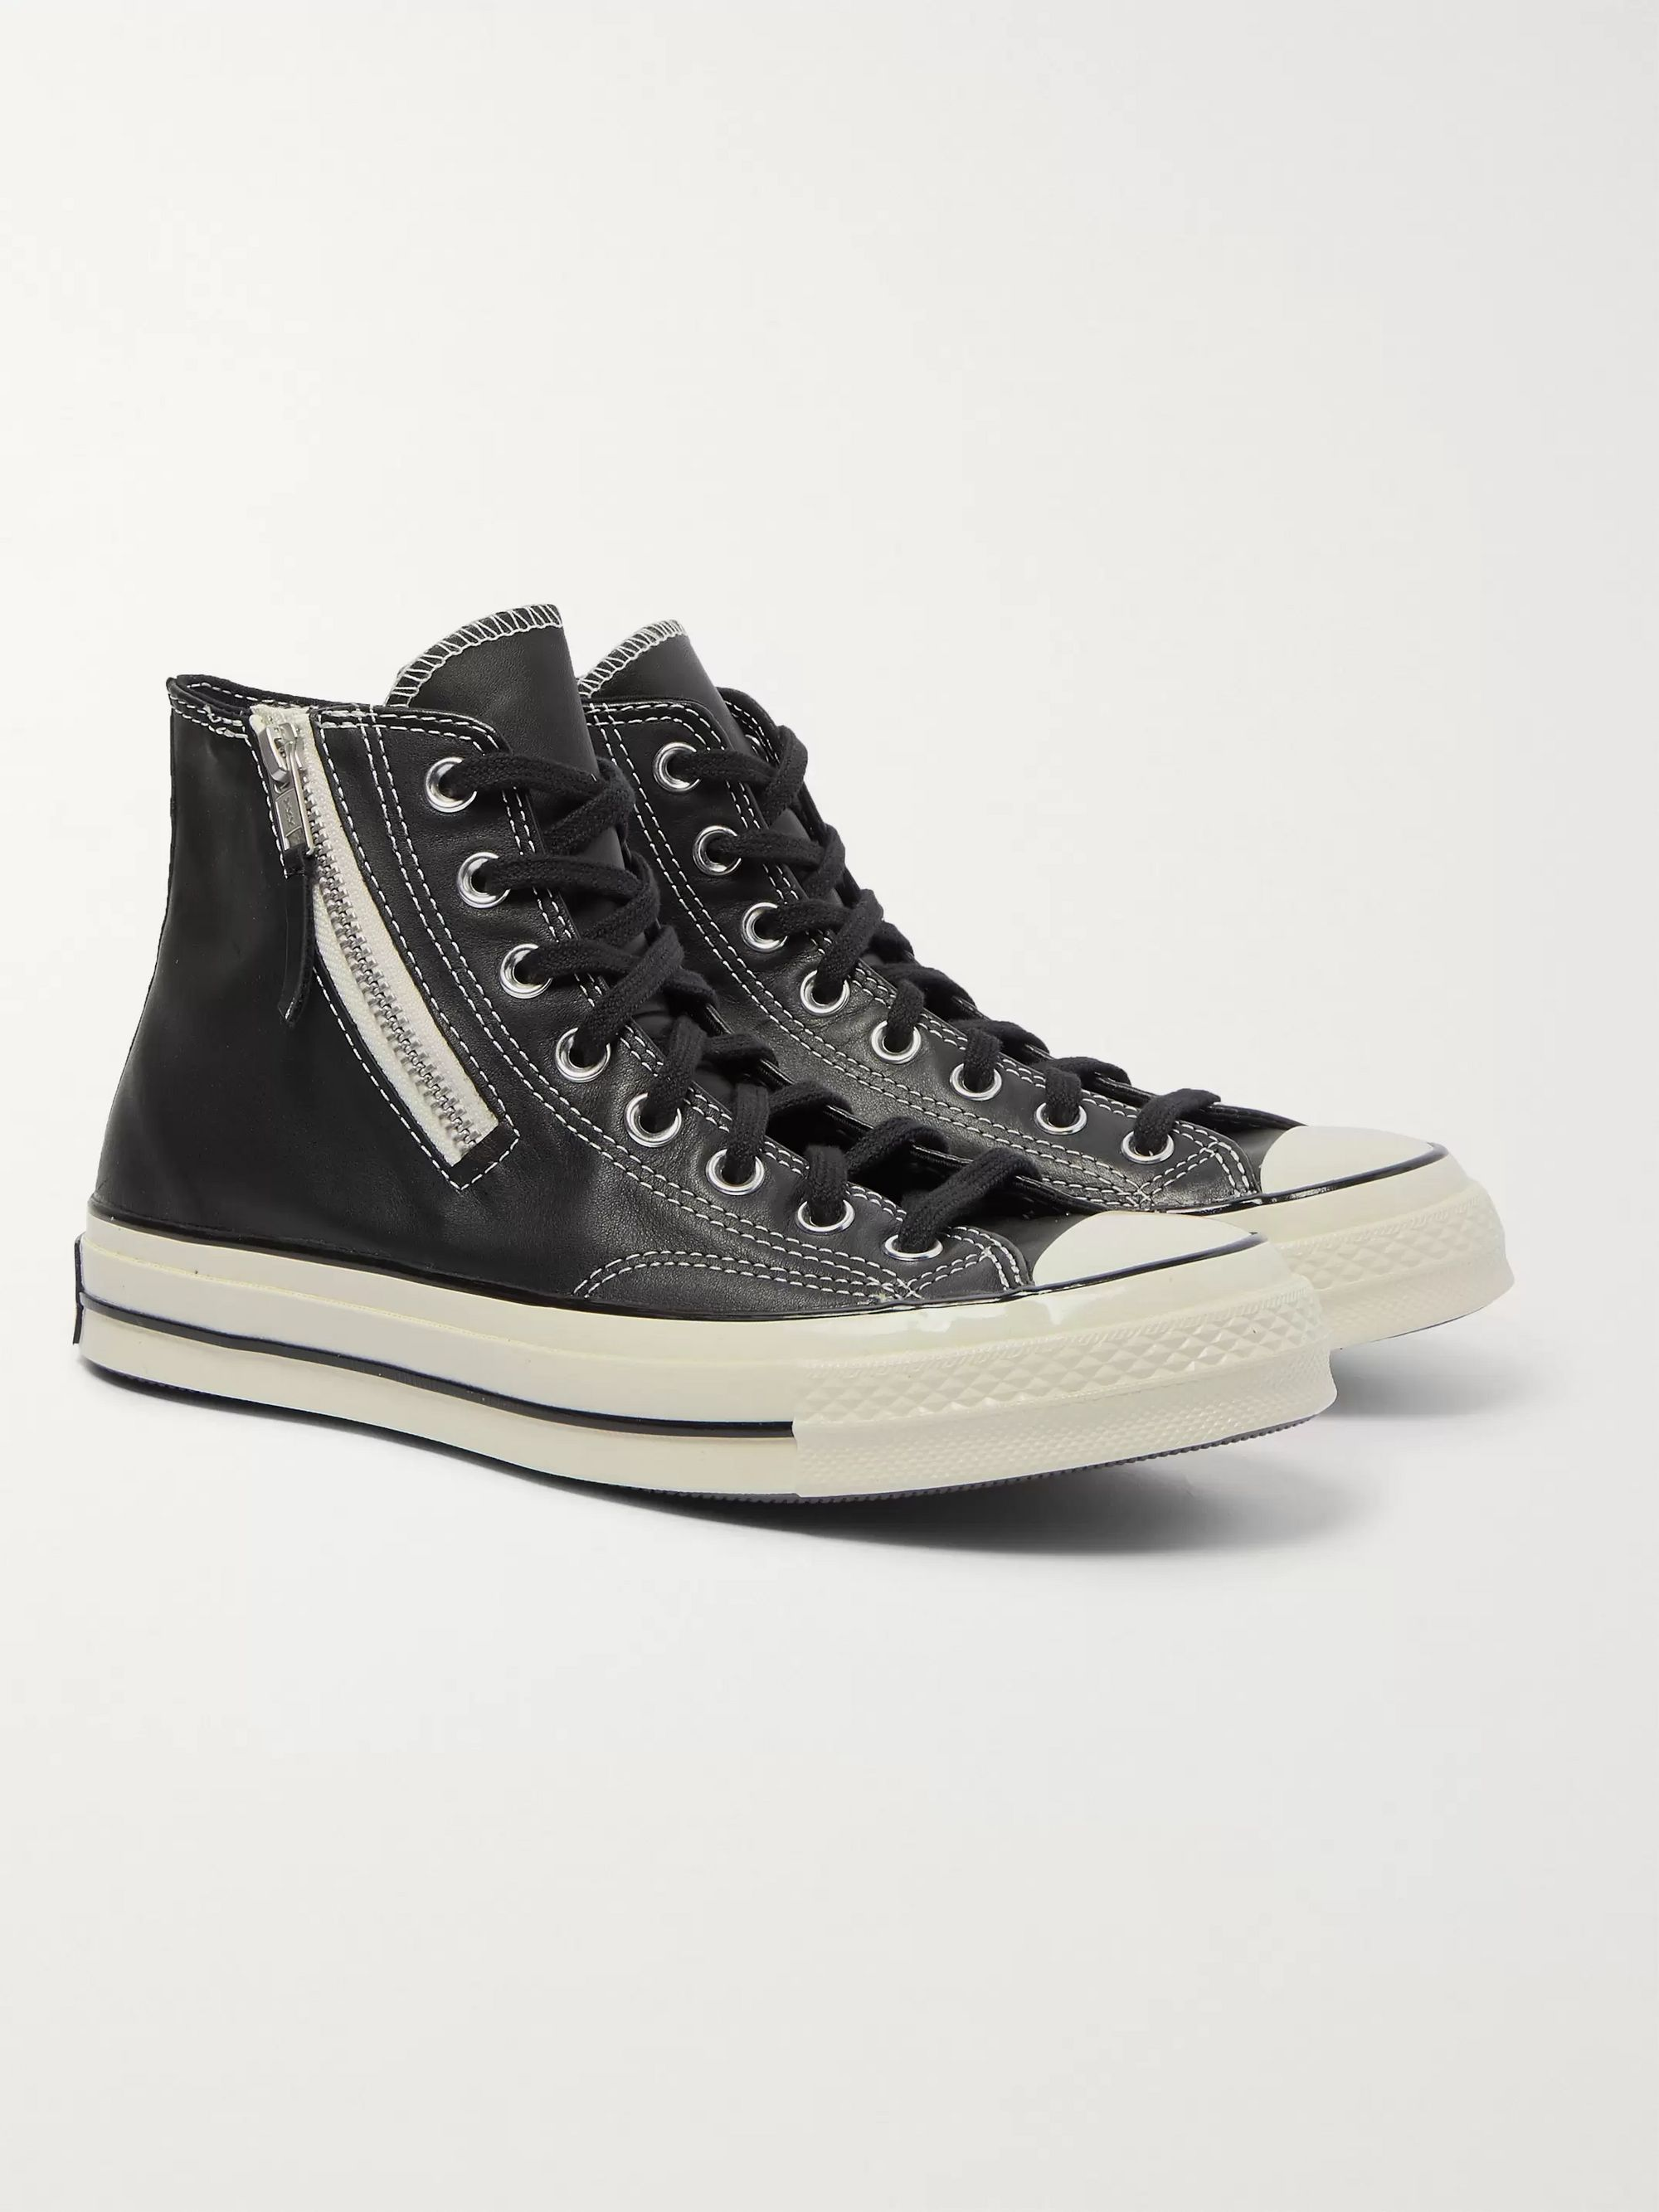 Chuck 70 Leather High Top Sneakers